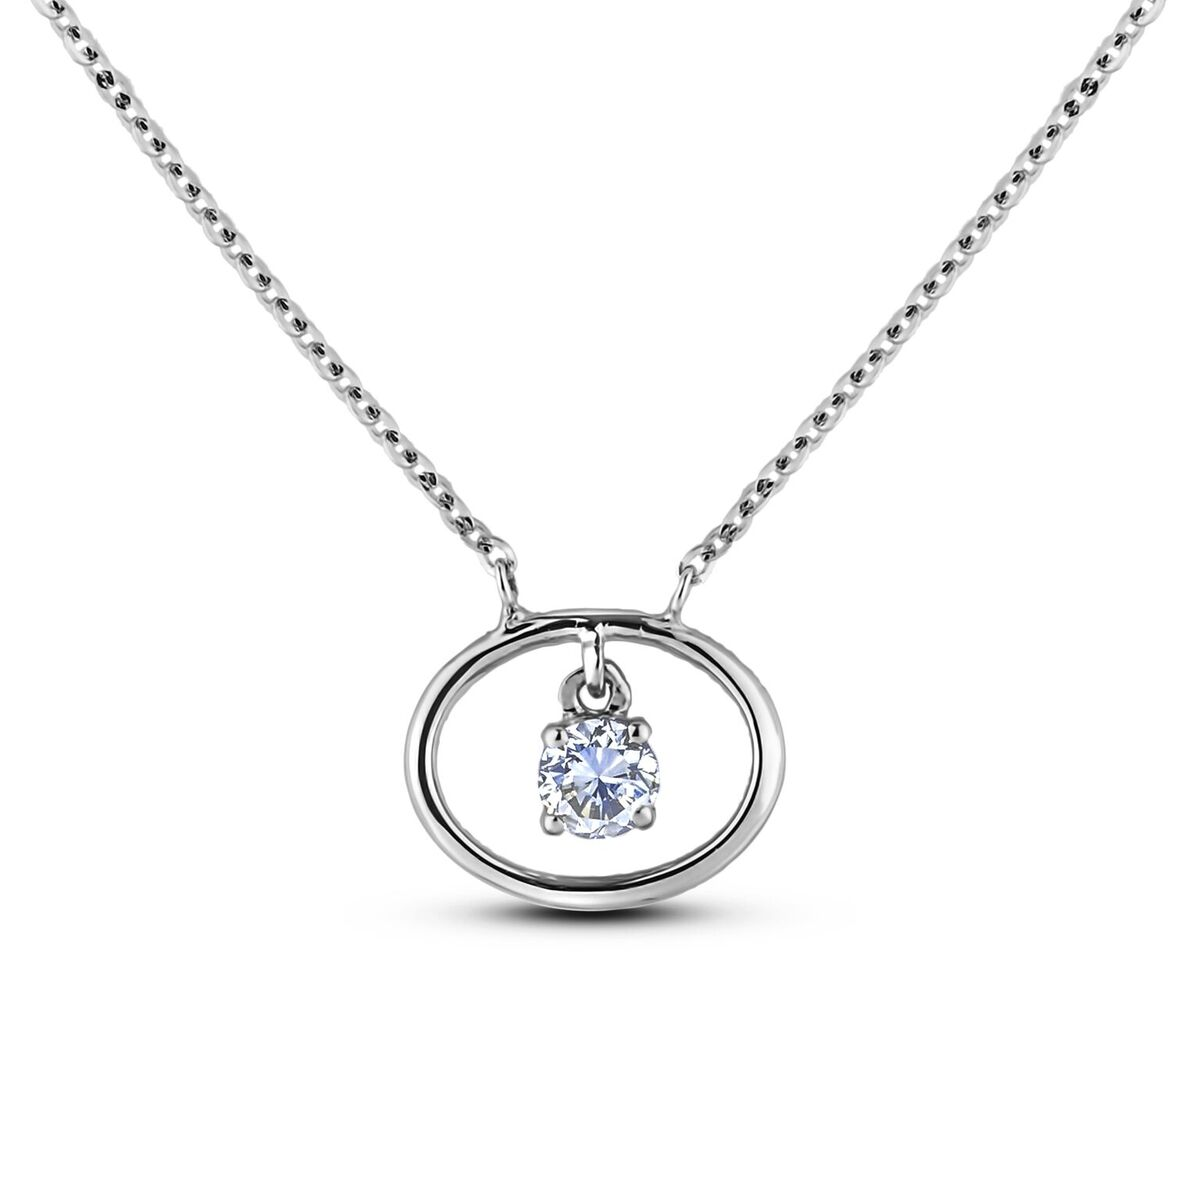 Diamond Solitaire Pendants SJL-MX-ND2680 (Pendants)